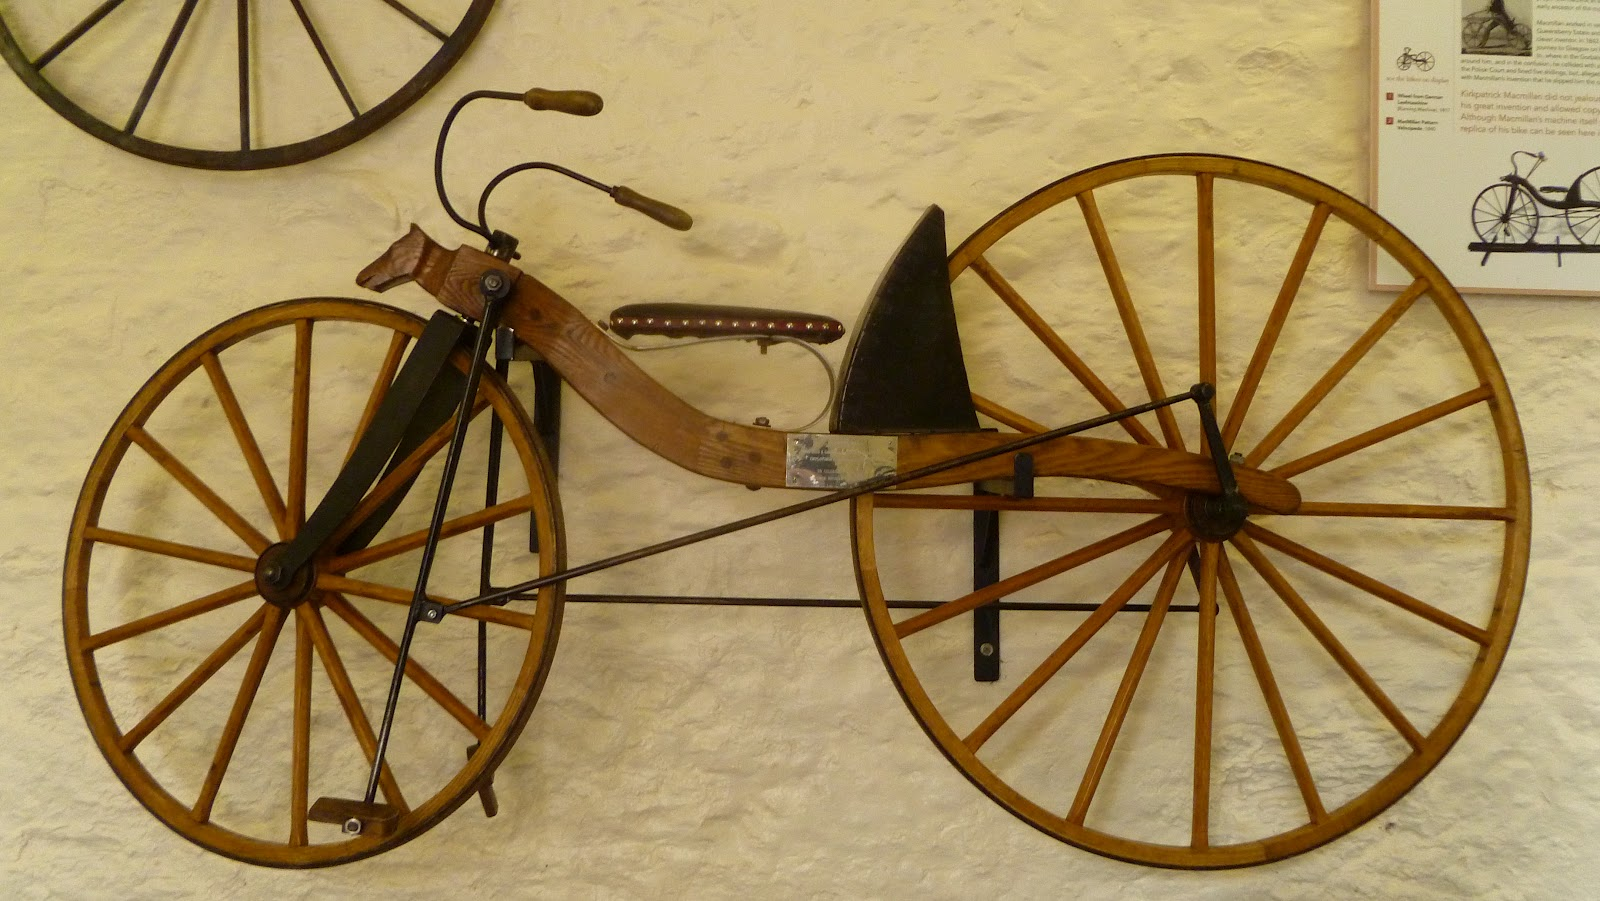 Replica of Kirkpatrick Macmillan's first mechanically driven bicycle